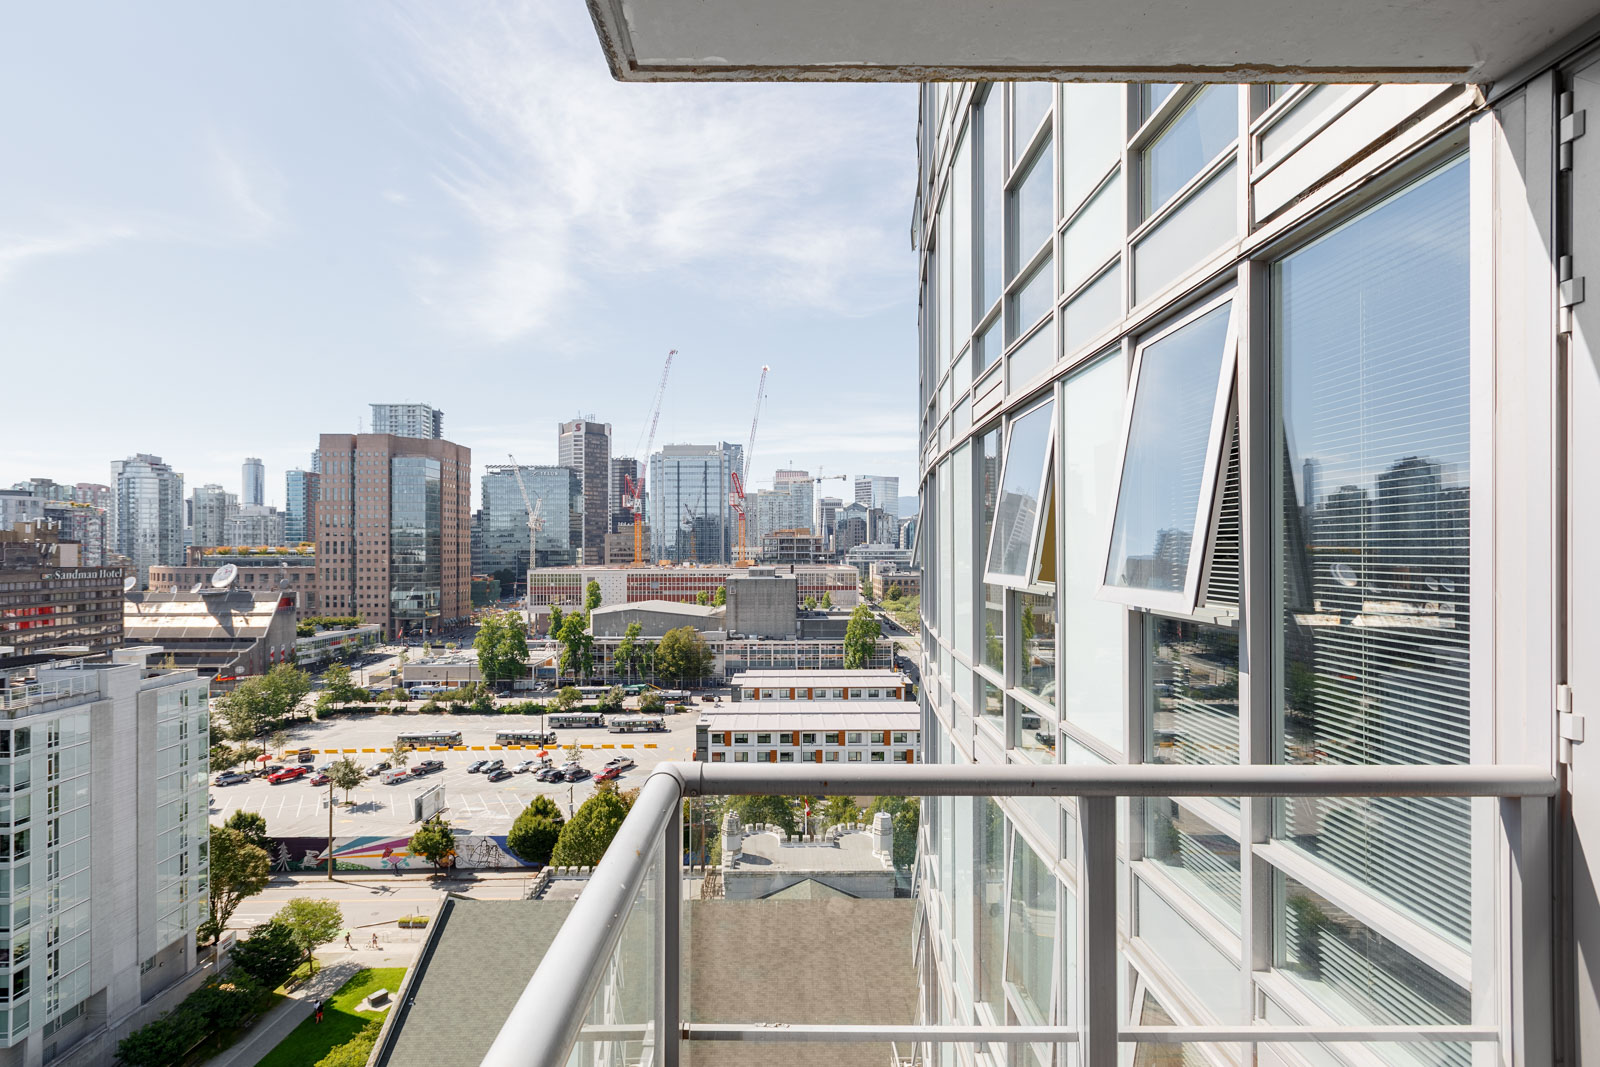 Private balcony of Downtown Vancouver rental condo overlooking the city.